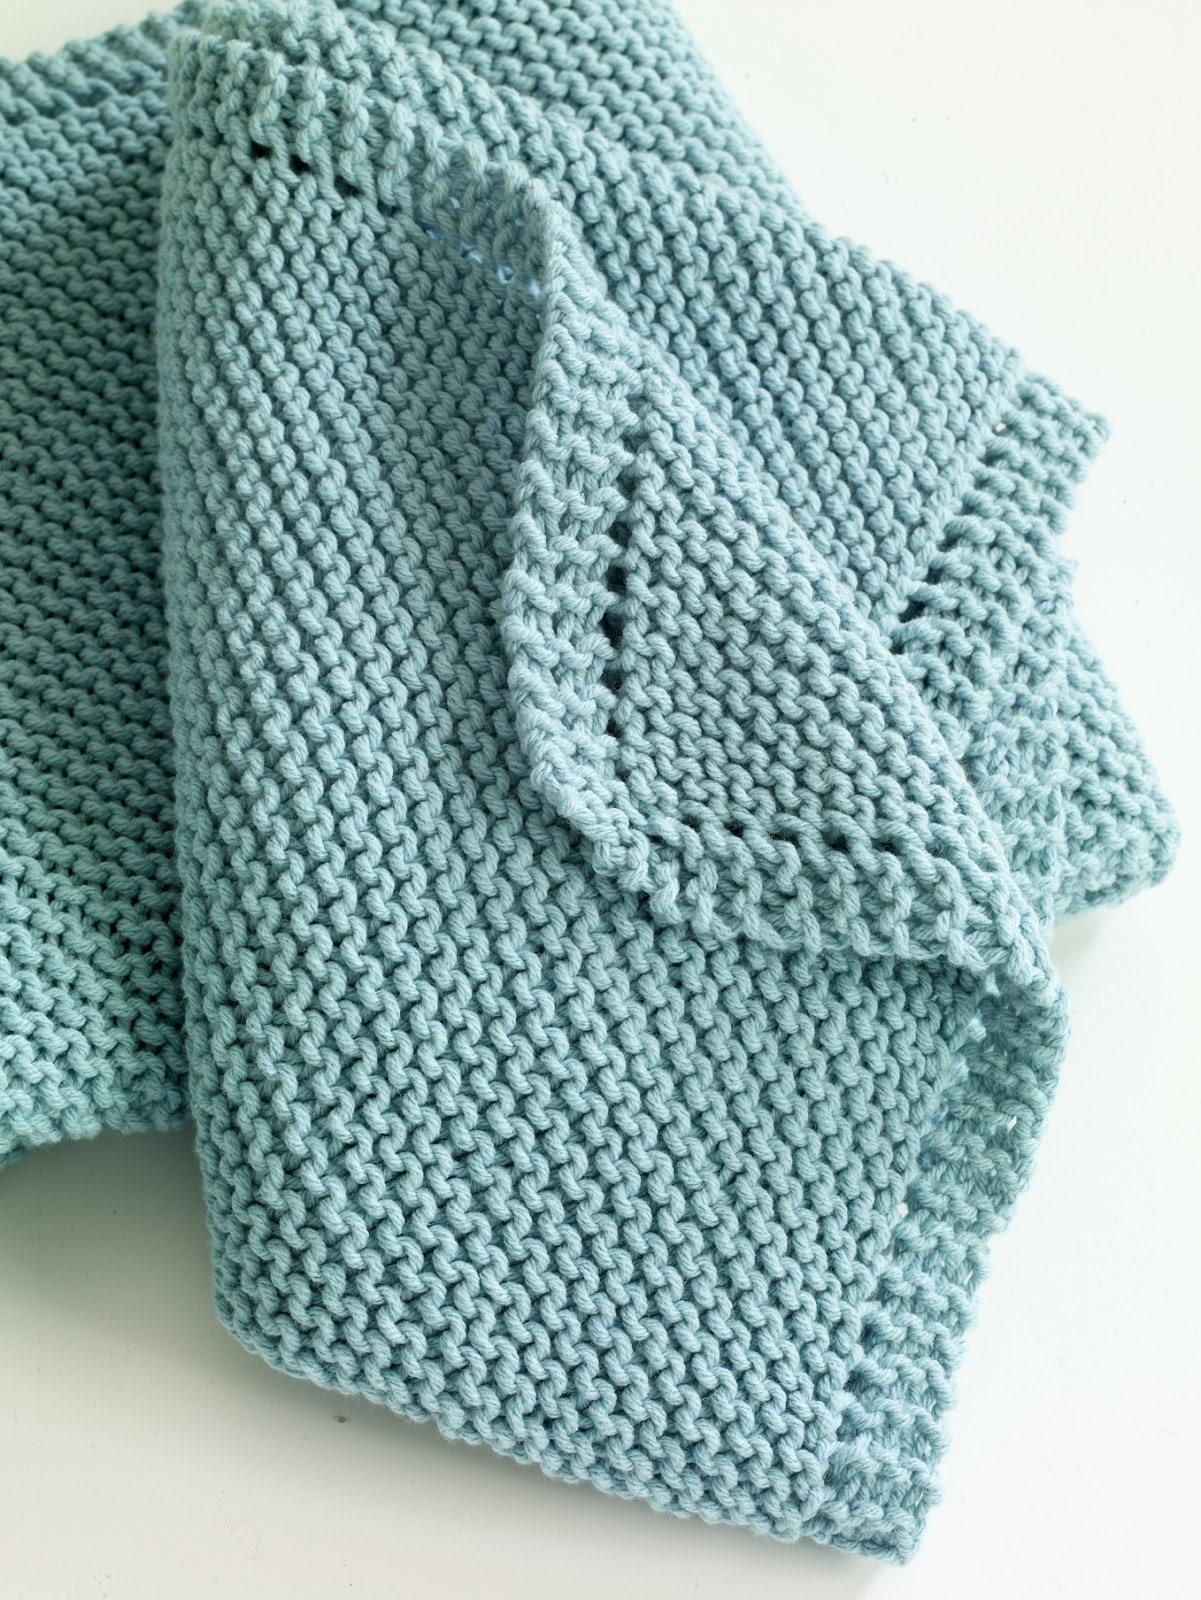 Free Knitted Blanket Patterns : Serenity Knits: December 2012